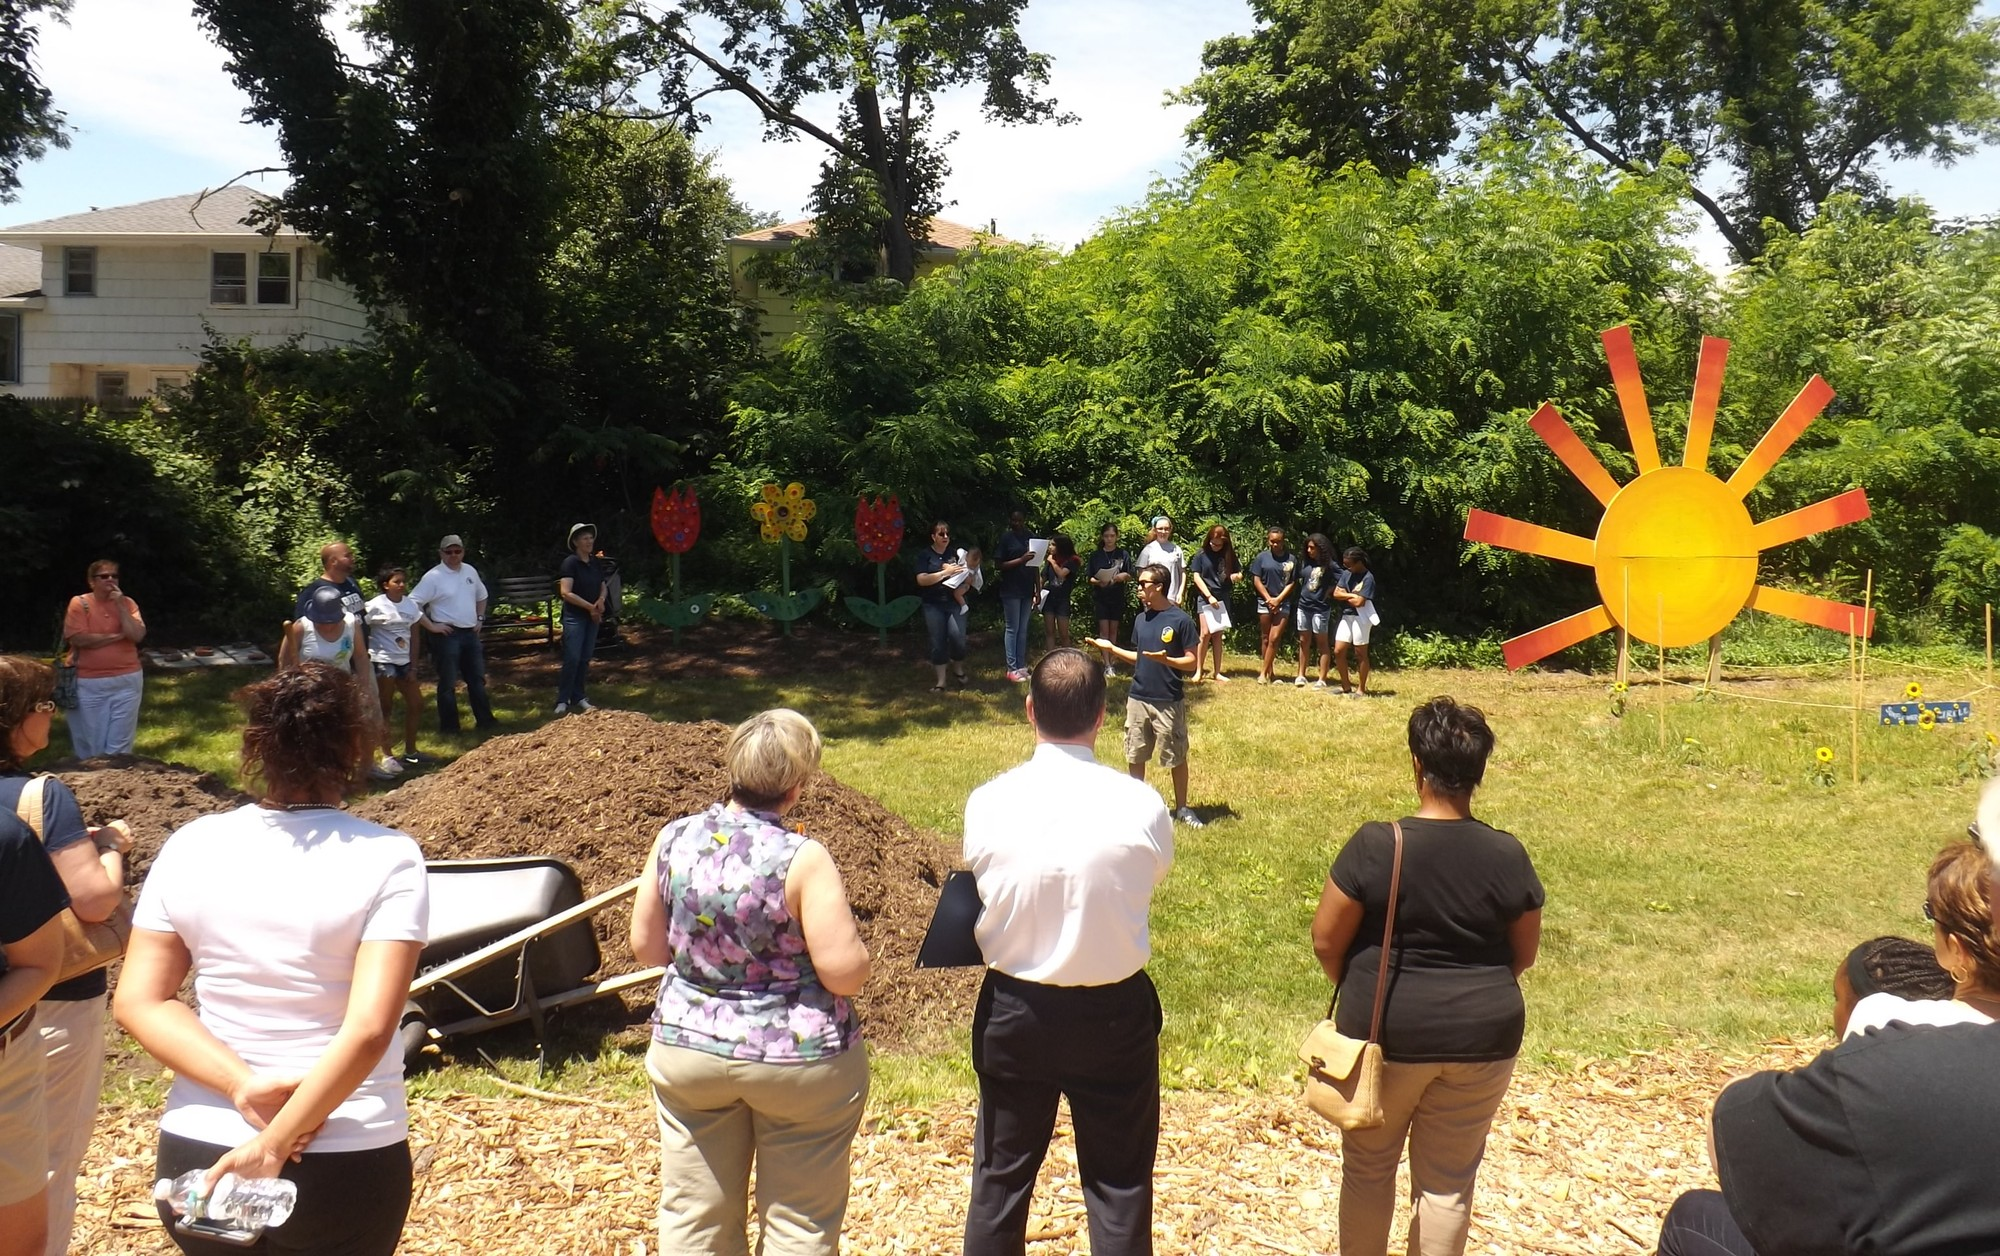 The Baldwin Civic Association hosted a ceremony on June 21 to open its new community garden behind the Baldwin Historical Society Museum, off Grand Ave. BCA President David Viana, center, welcomed residents and thanked those who helped create the garden.